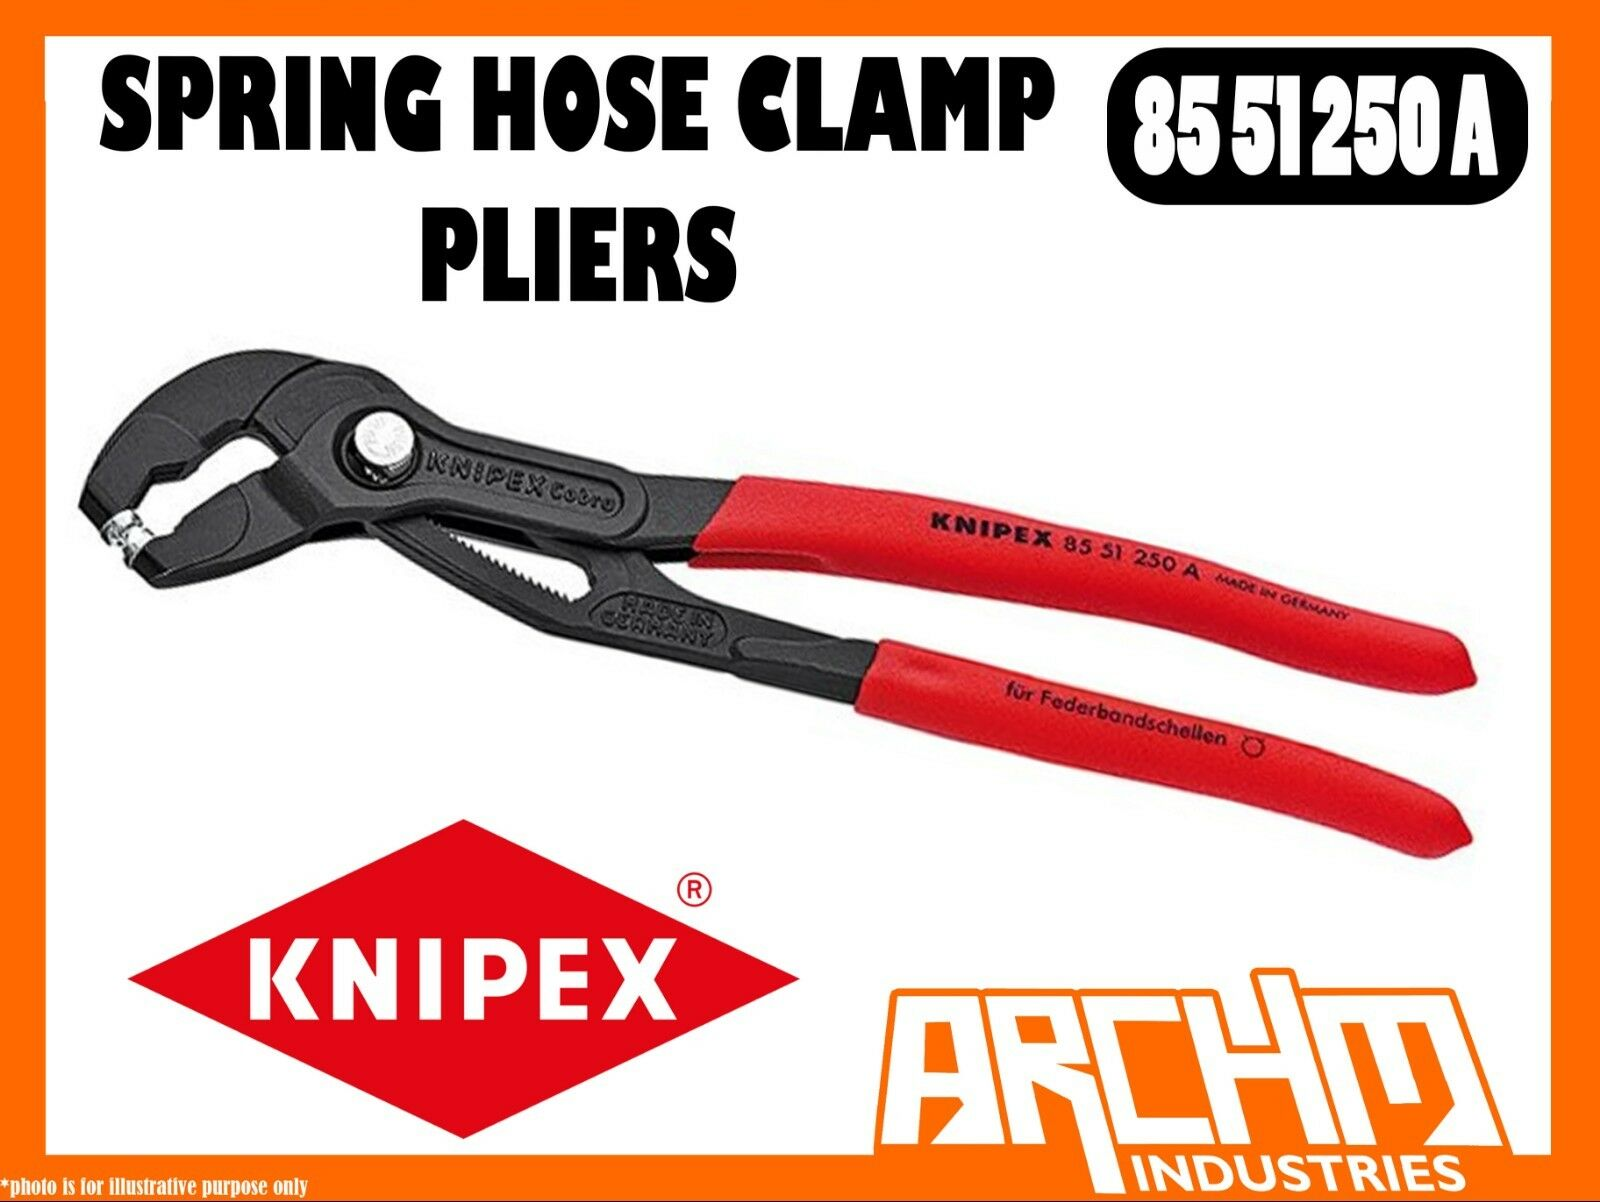 KNIPEX 8551250A - SPRING HOSE CLAMP PLIERS - 250MM - UNIVERSAL GRIP INSERTS